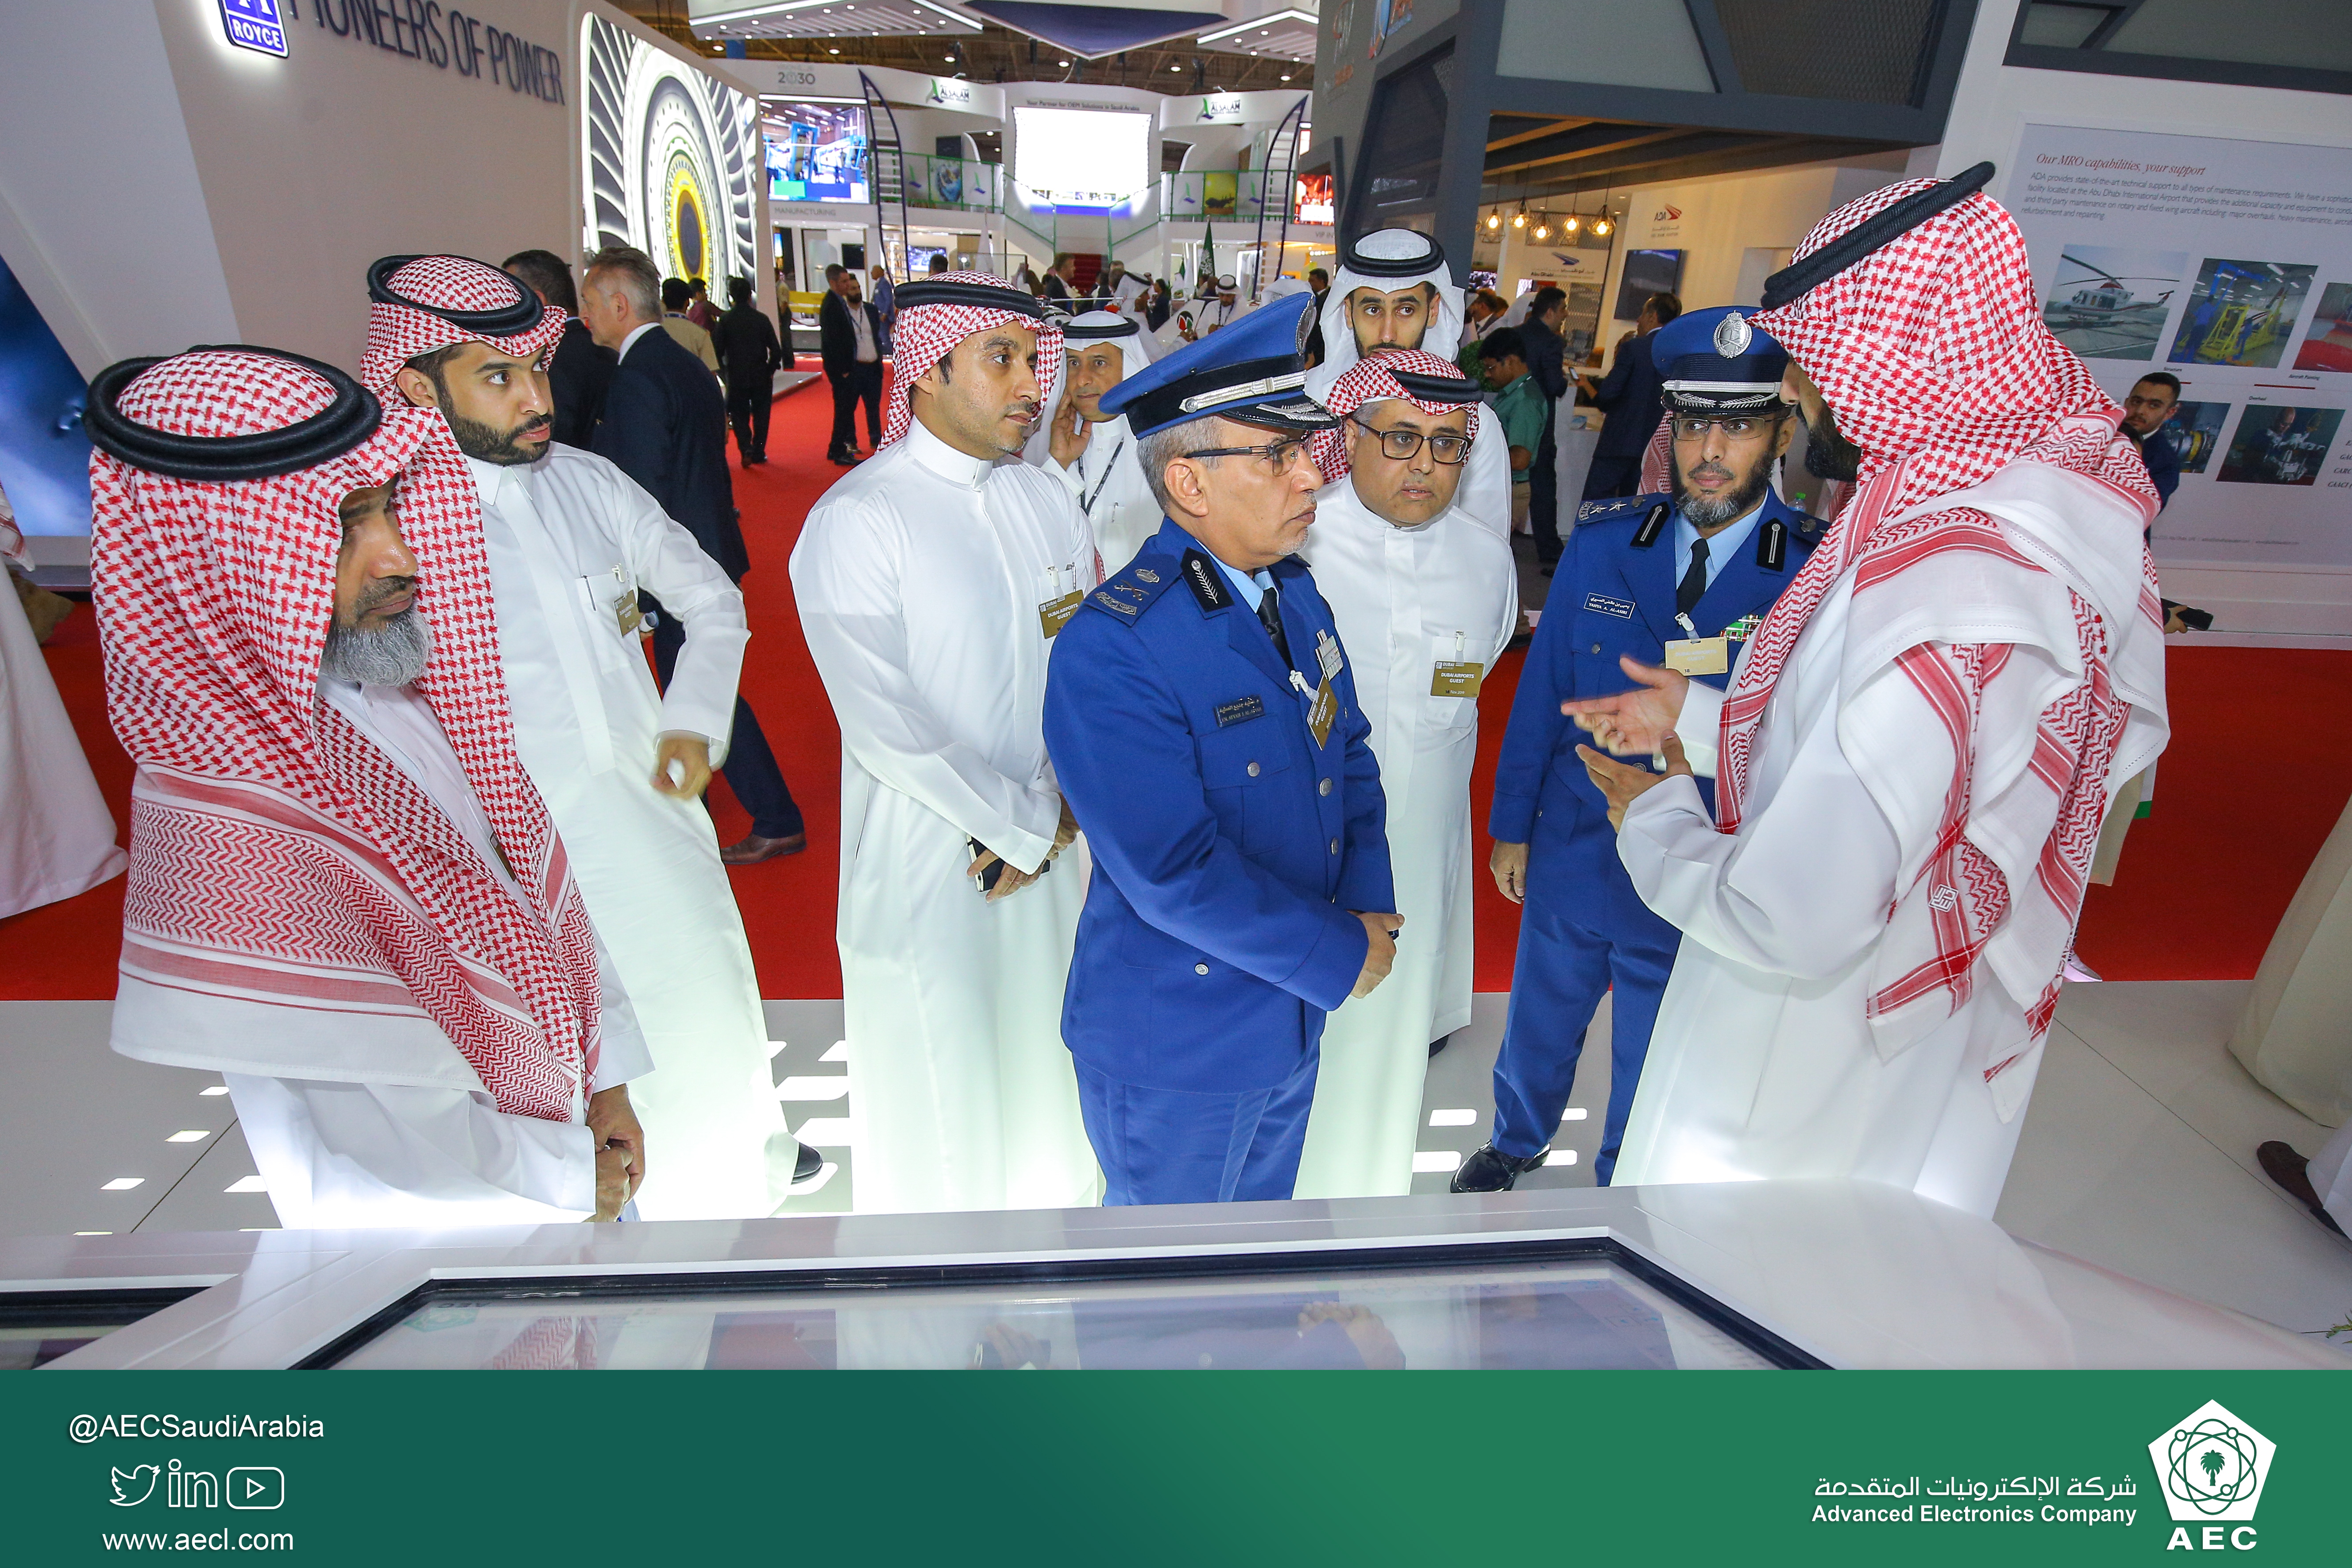 AEC's VIP visit for the second day at Dubai Airshow